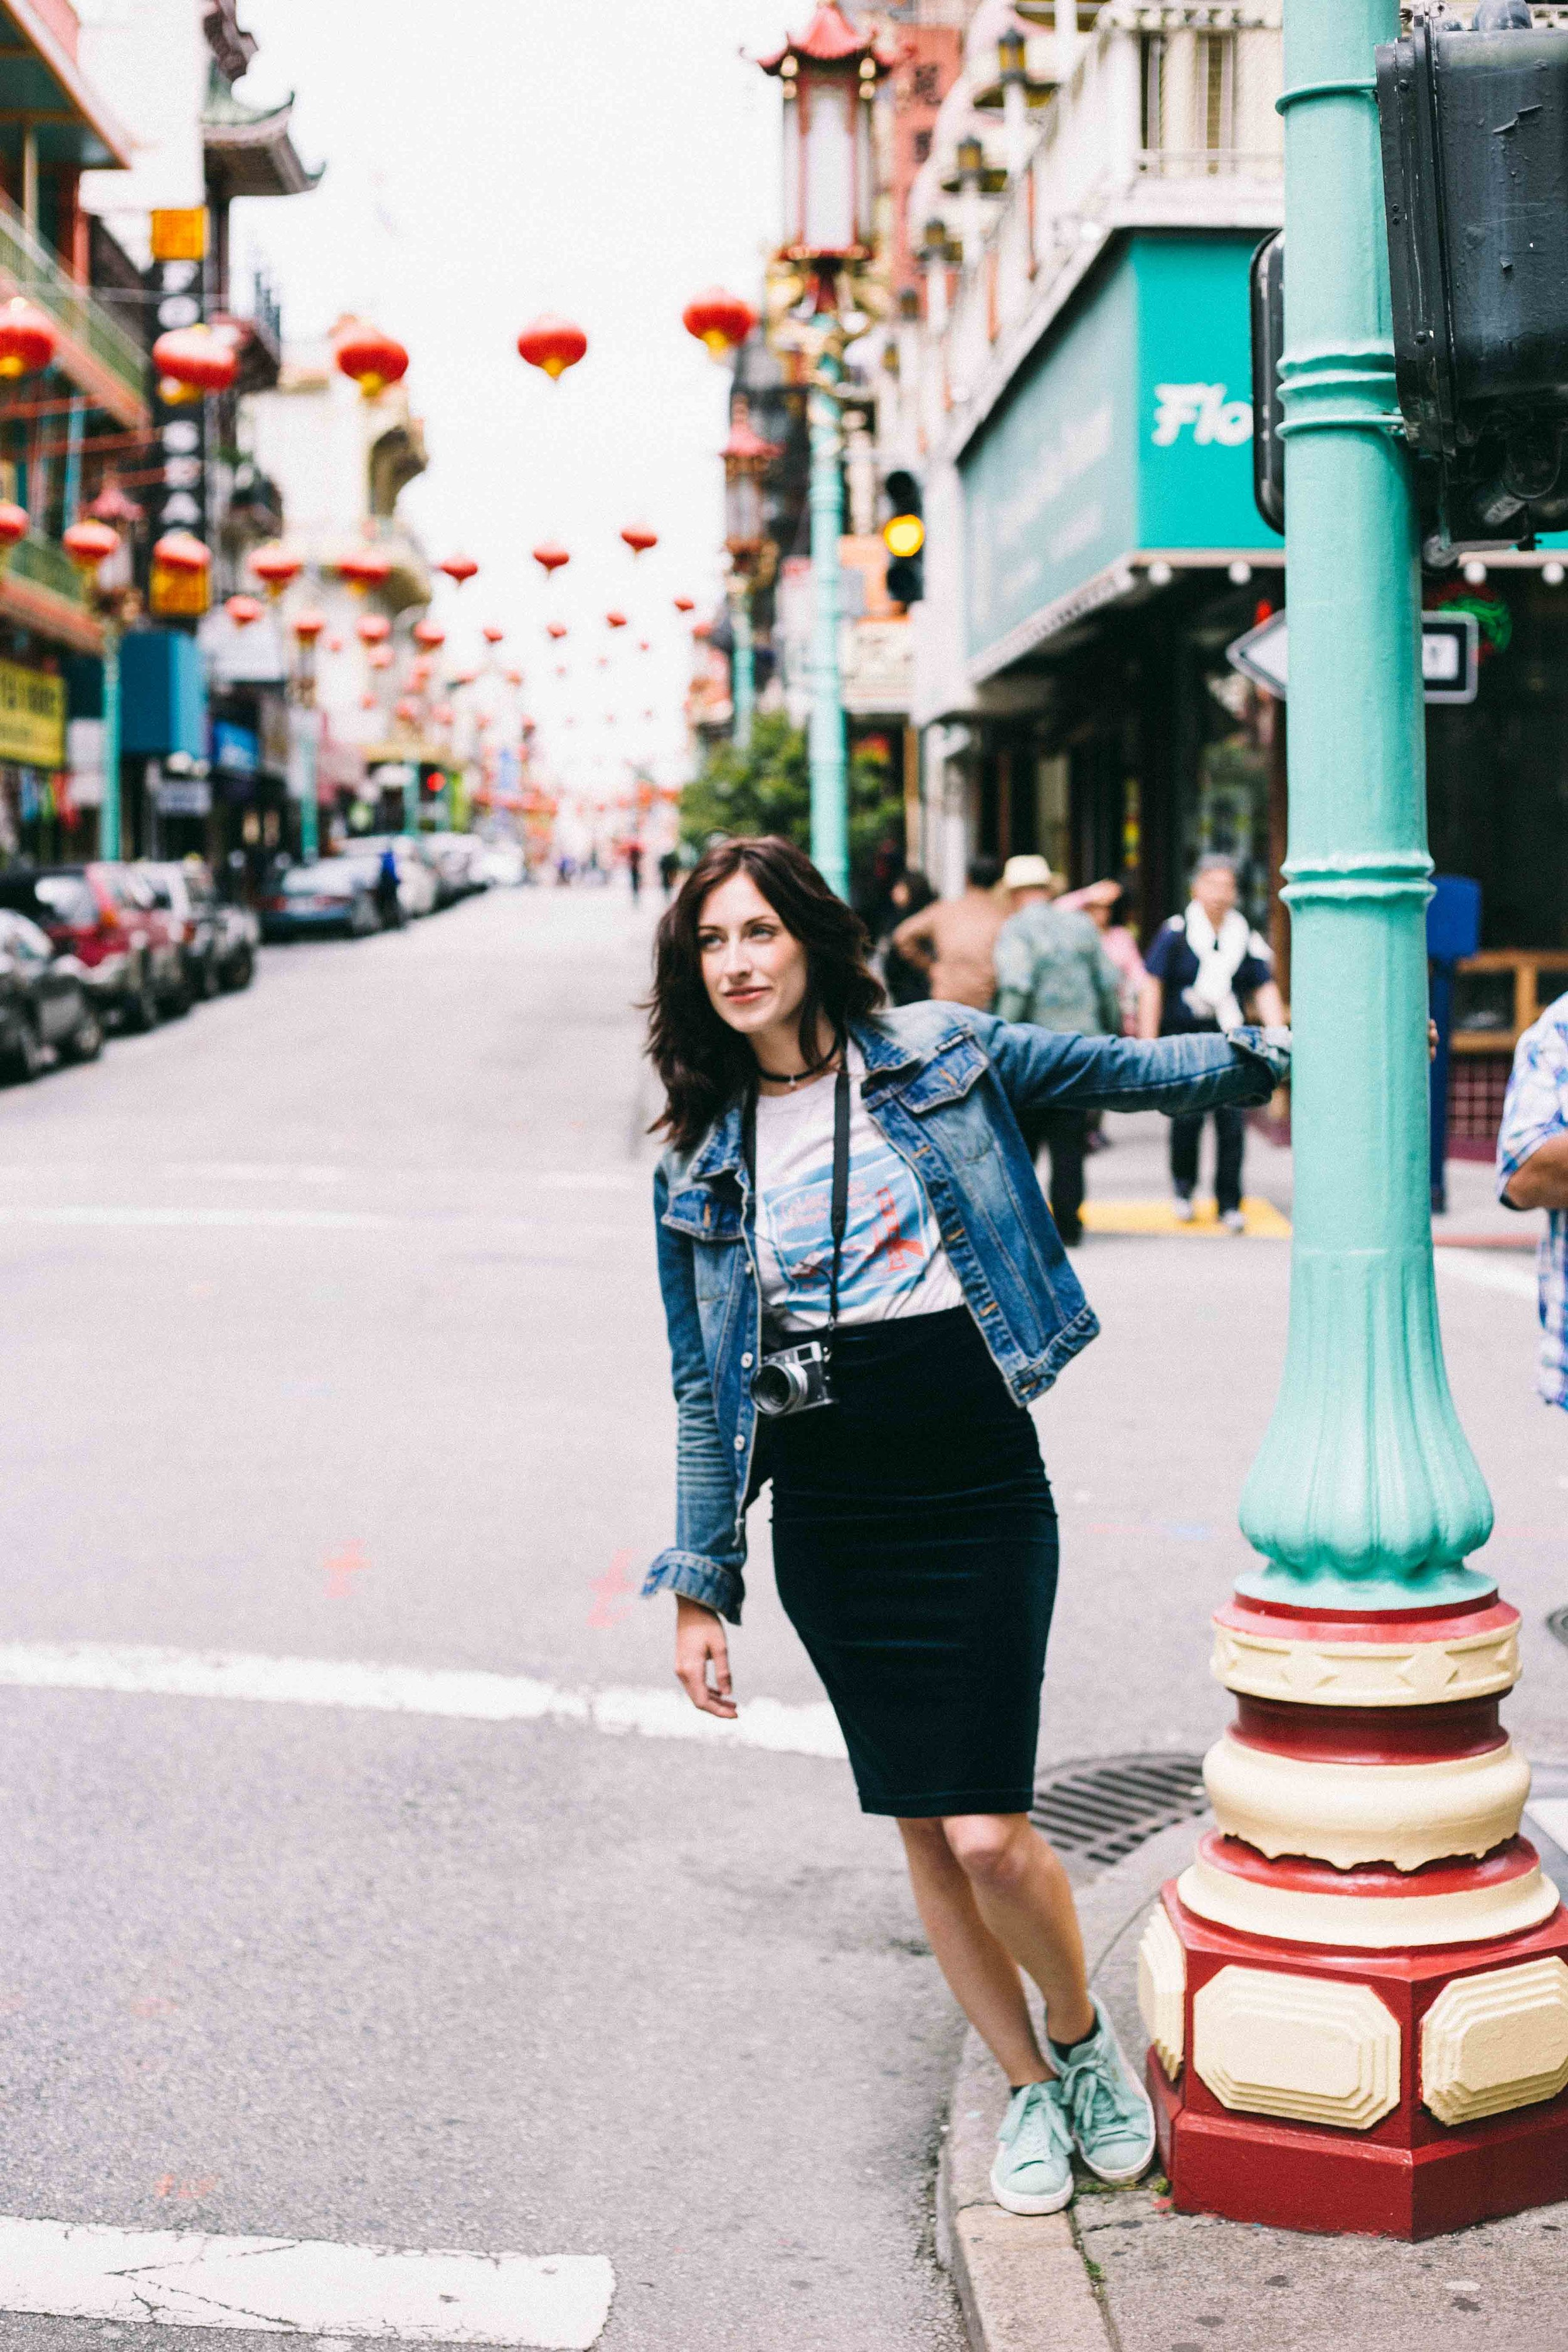 Lauren in San Fran - Lifestyle photography